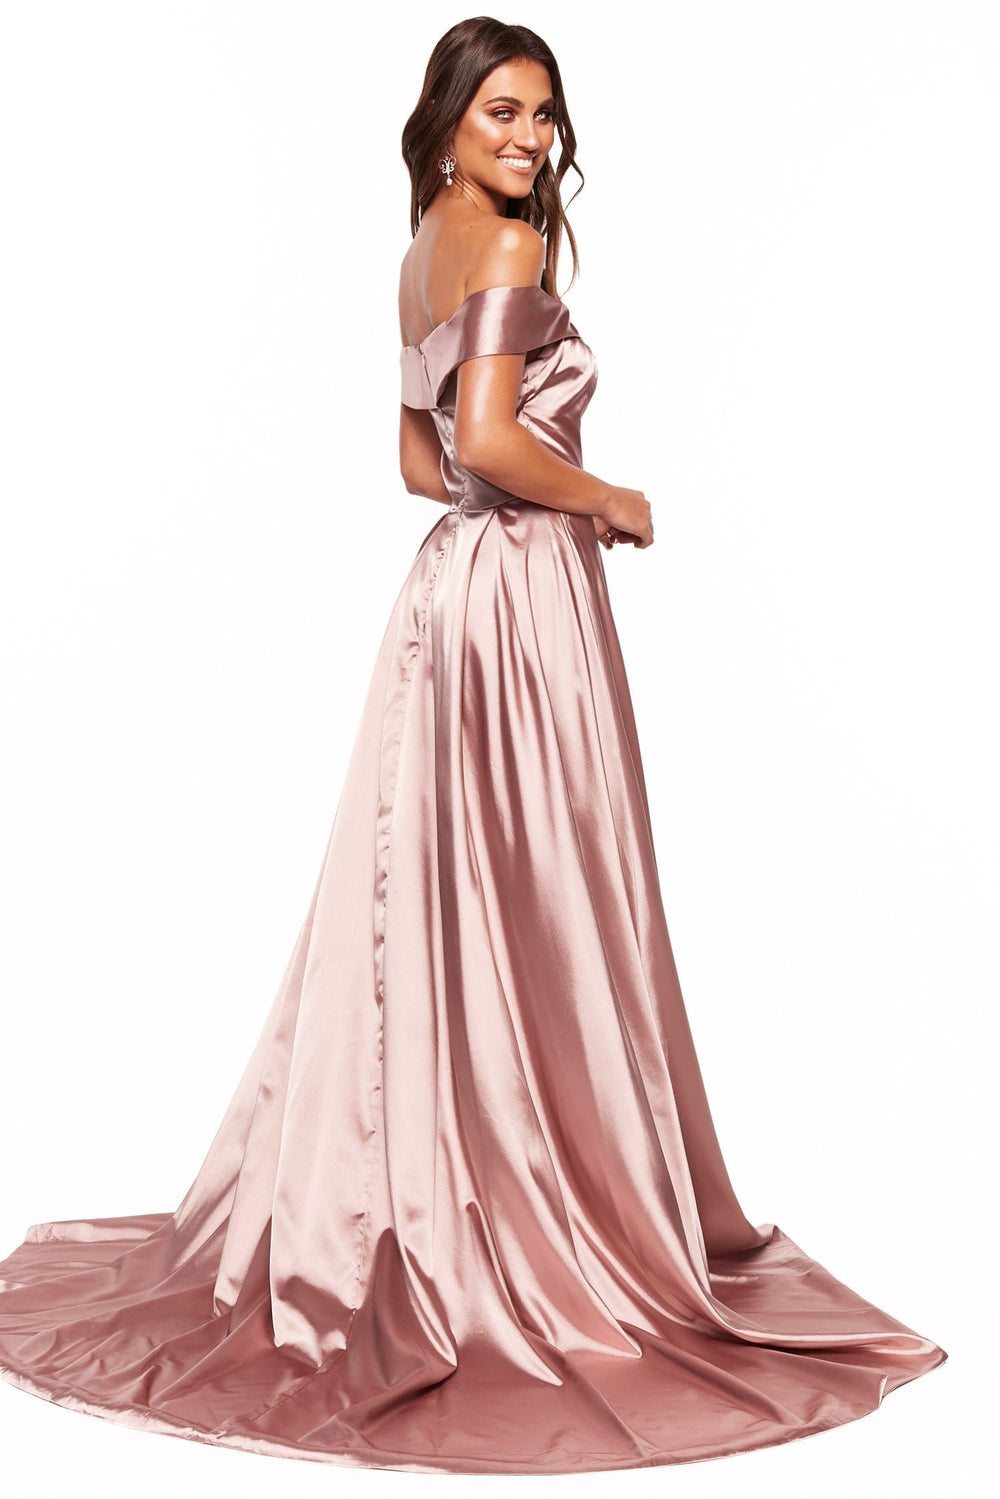 A&N Luciana - Mauve Satin Gown with Off-Shoulder Straps and Slit